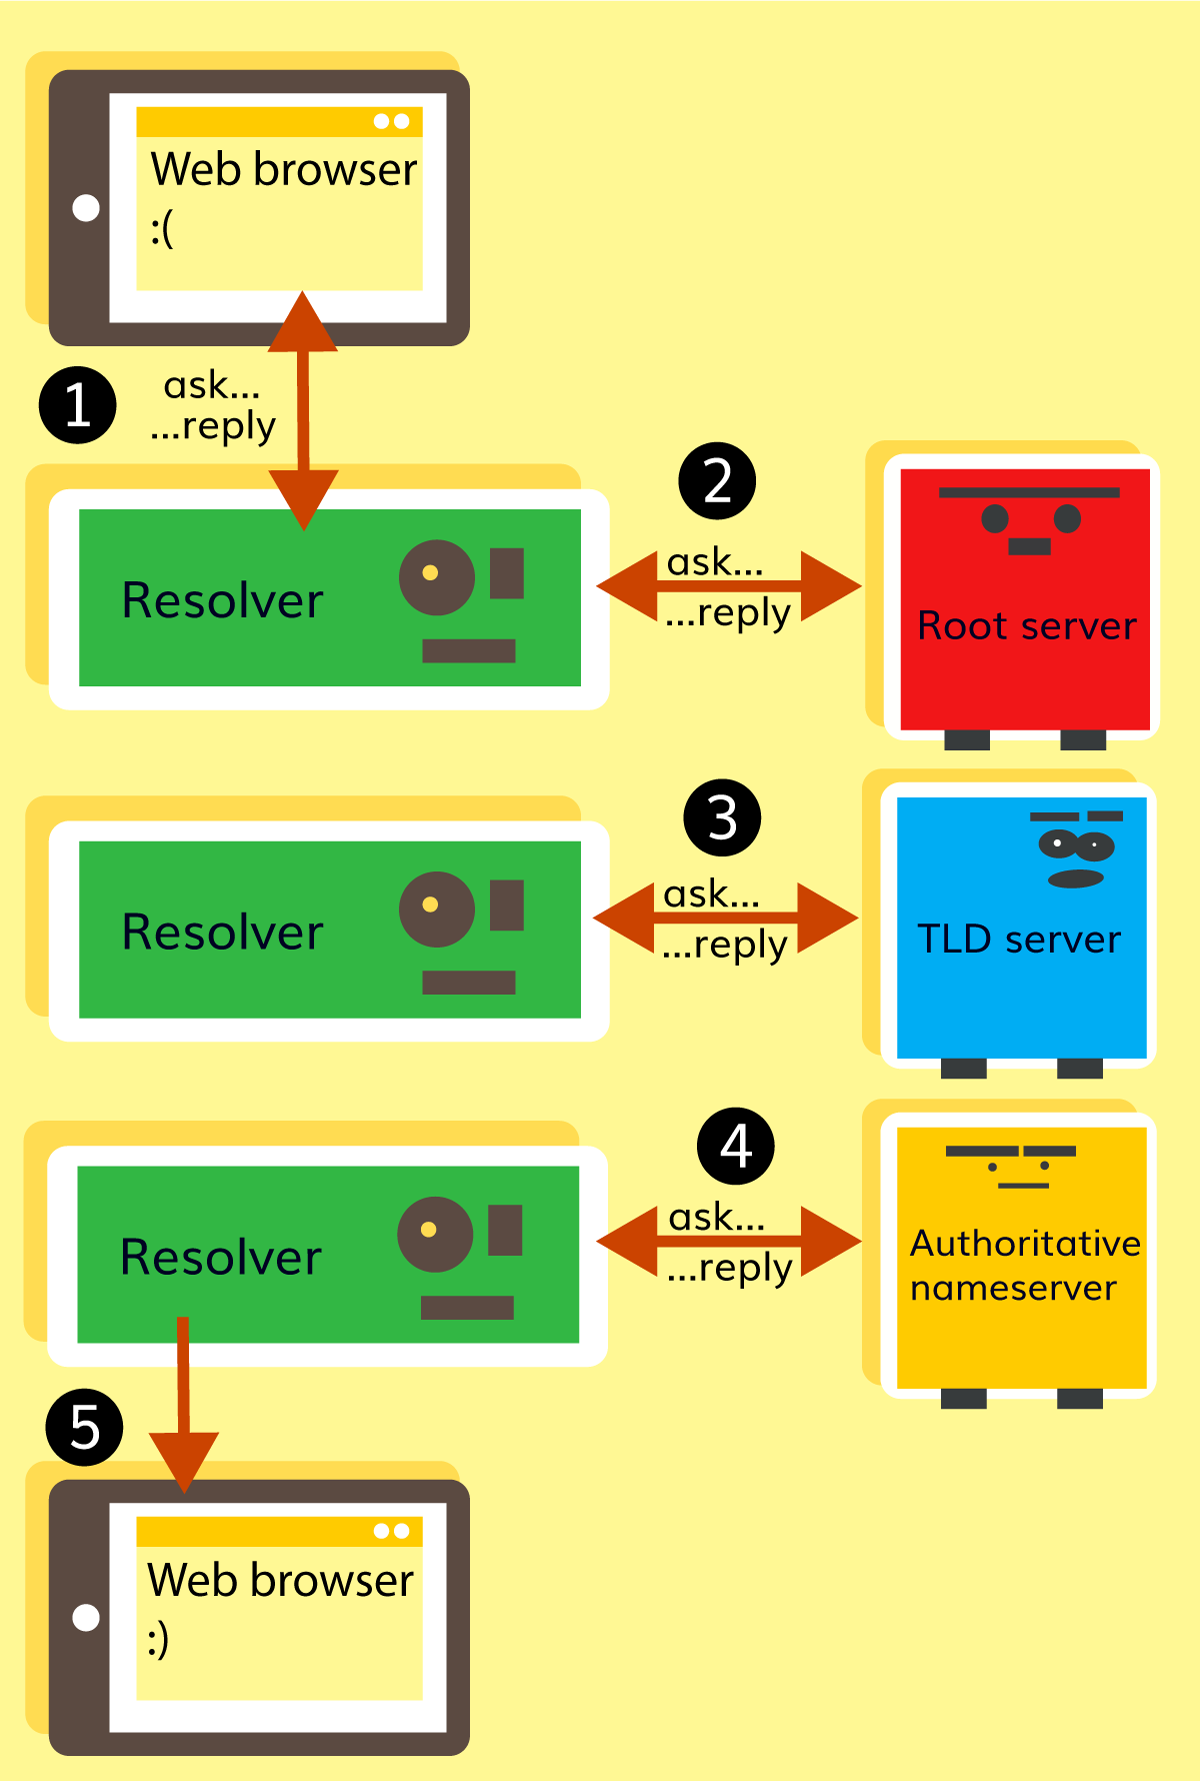 How DNS works from resolver, root, TLD to nameserver